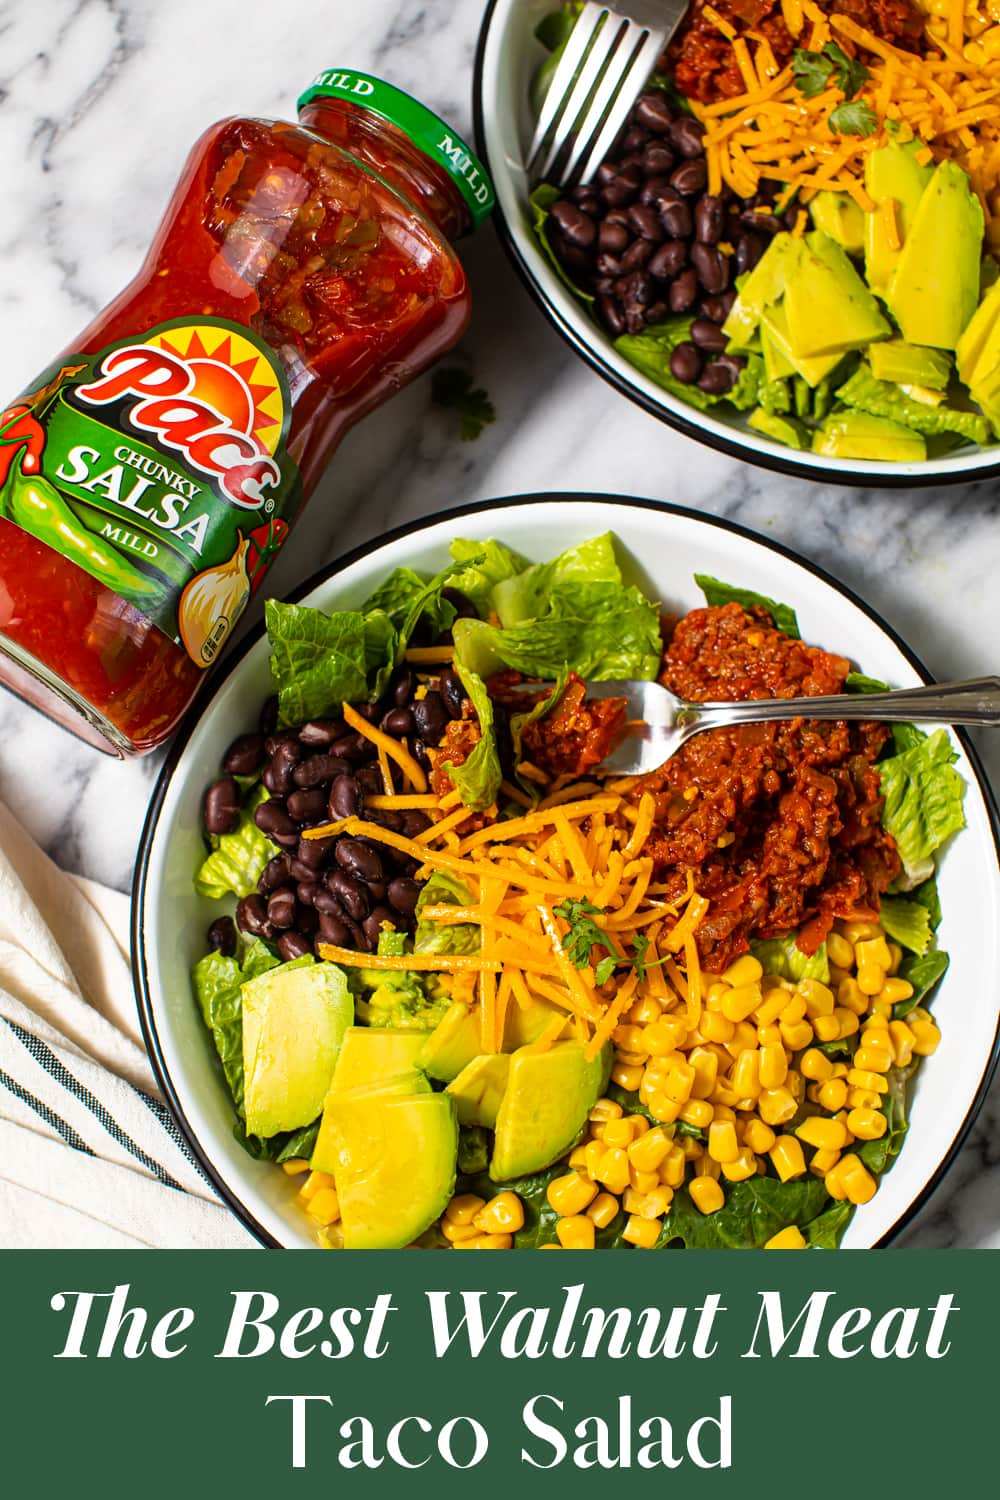 bowl of salad with black beans, sliced avocado, sweet corn, vegan cheese, lettuce, and vegan meat seasoned in salsa and taco seasoning with fork in it from an overhead view, with a jar of salsa to the side, and another bowl of the same salad behind it